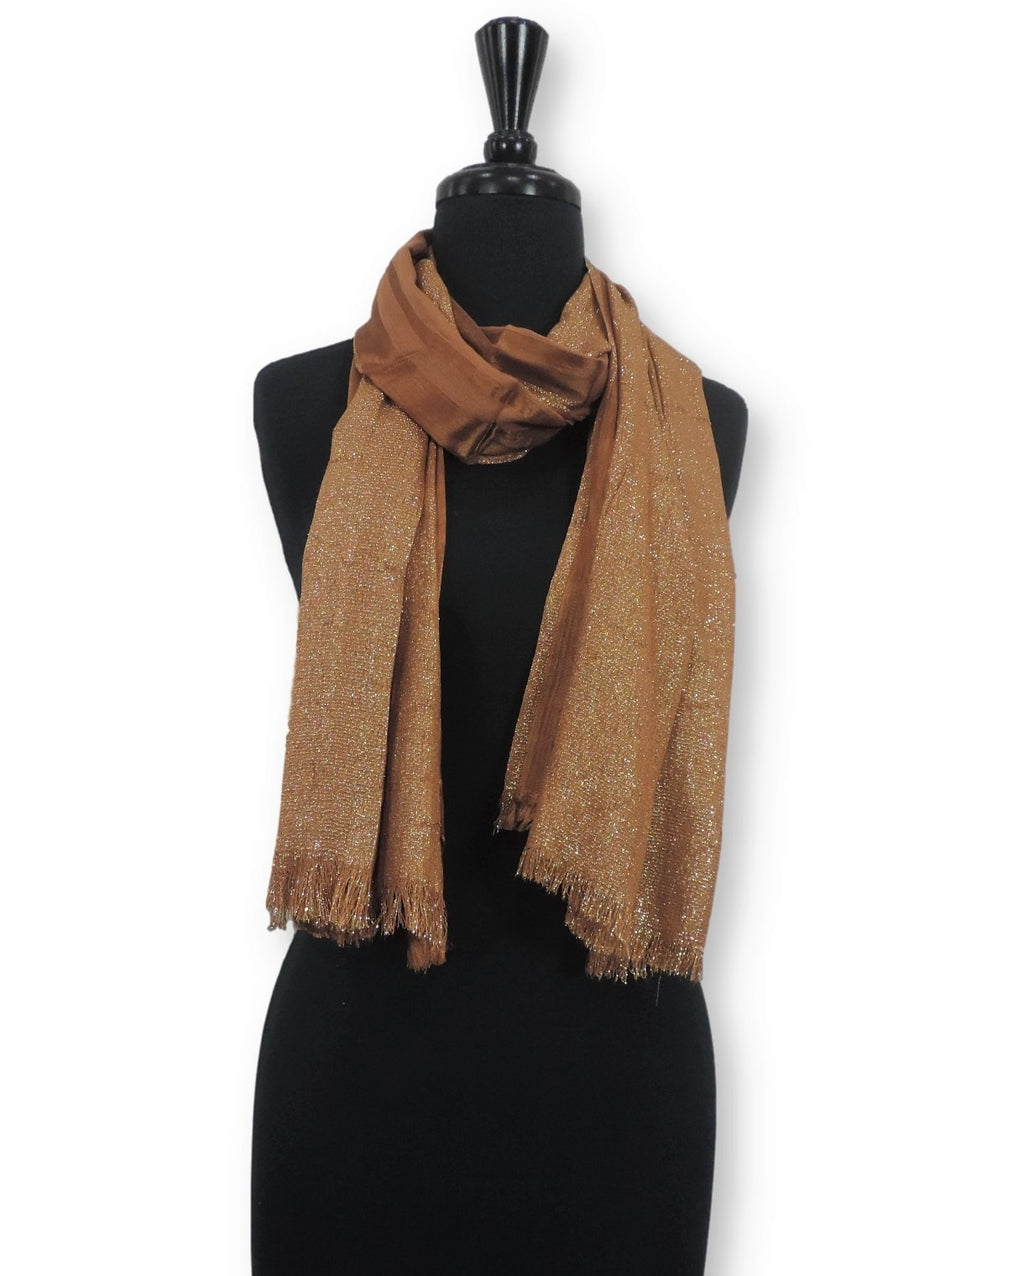 Tawny Shimmer Cotton Scarf - Global Trendz Fashion®